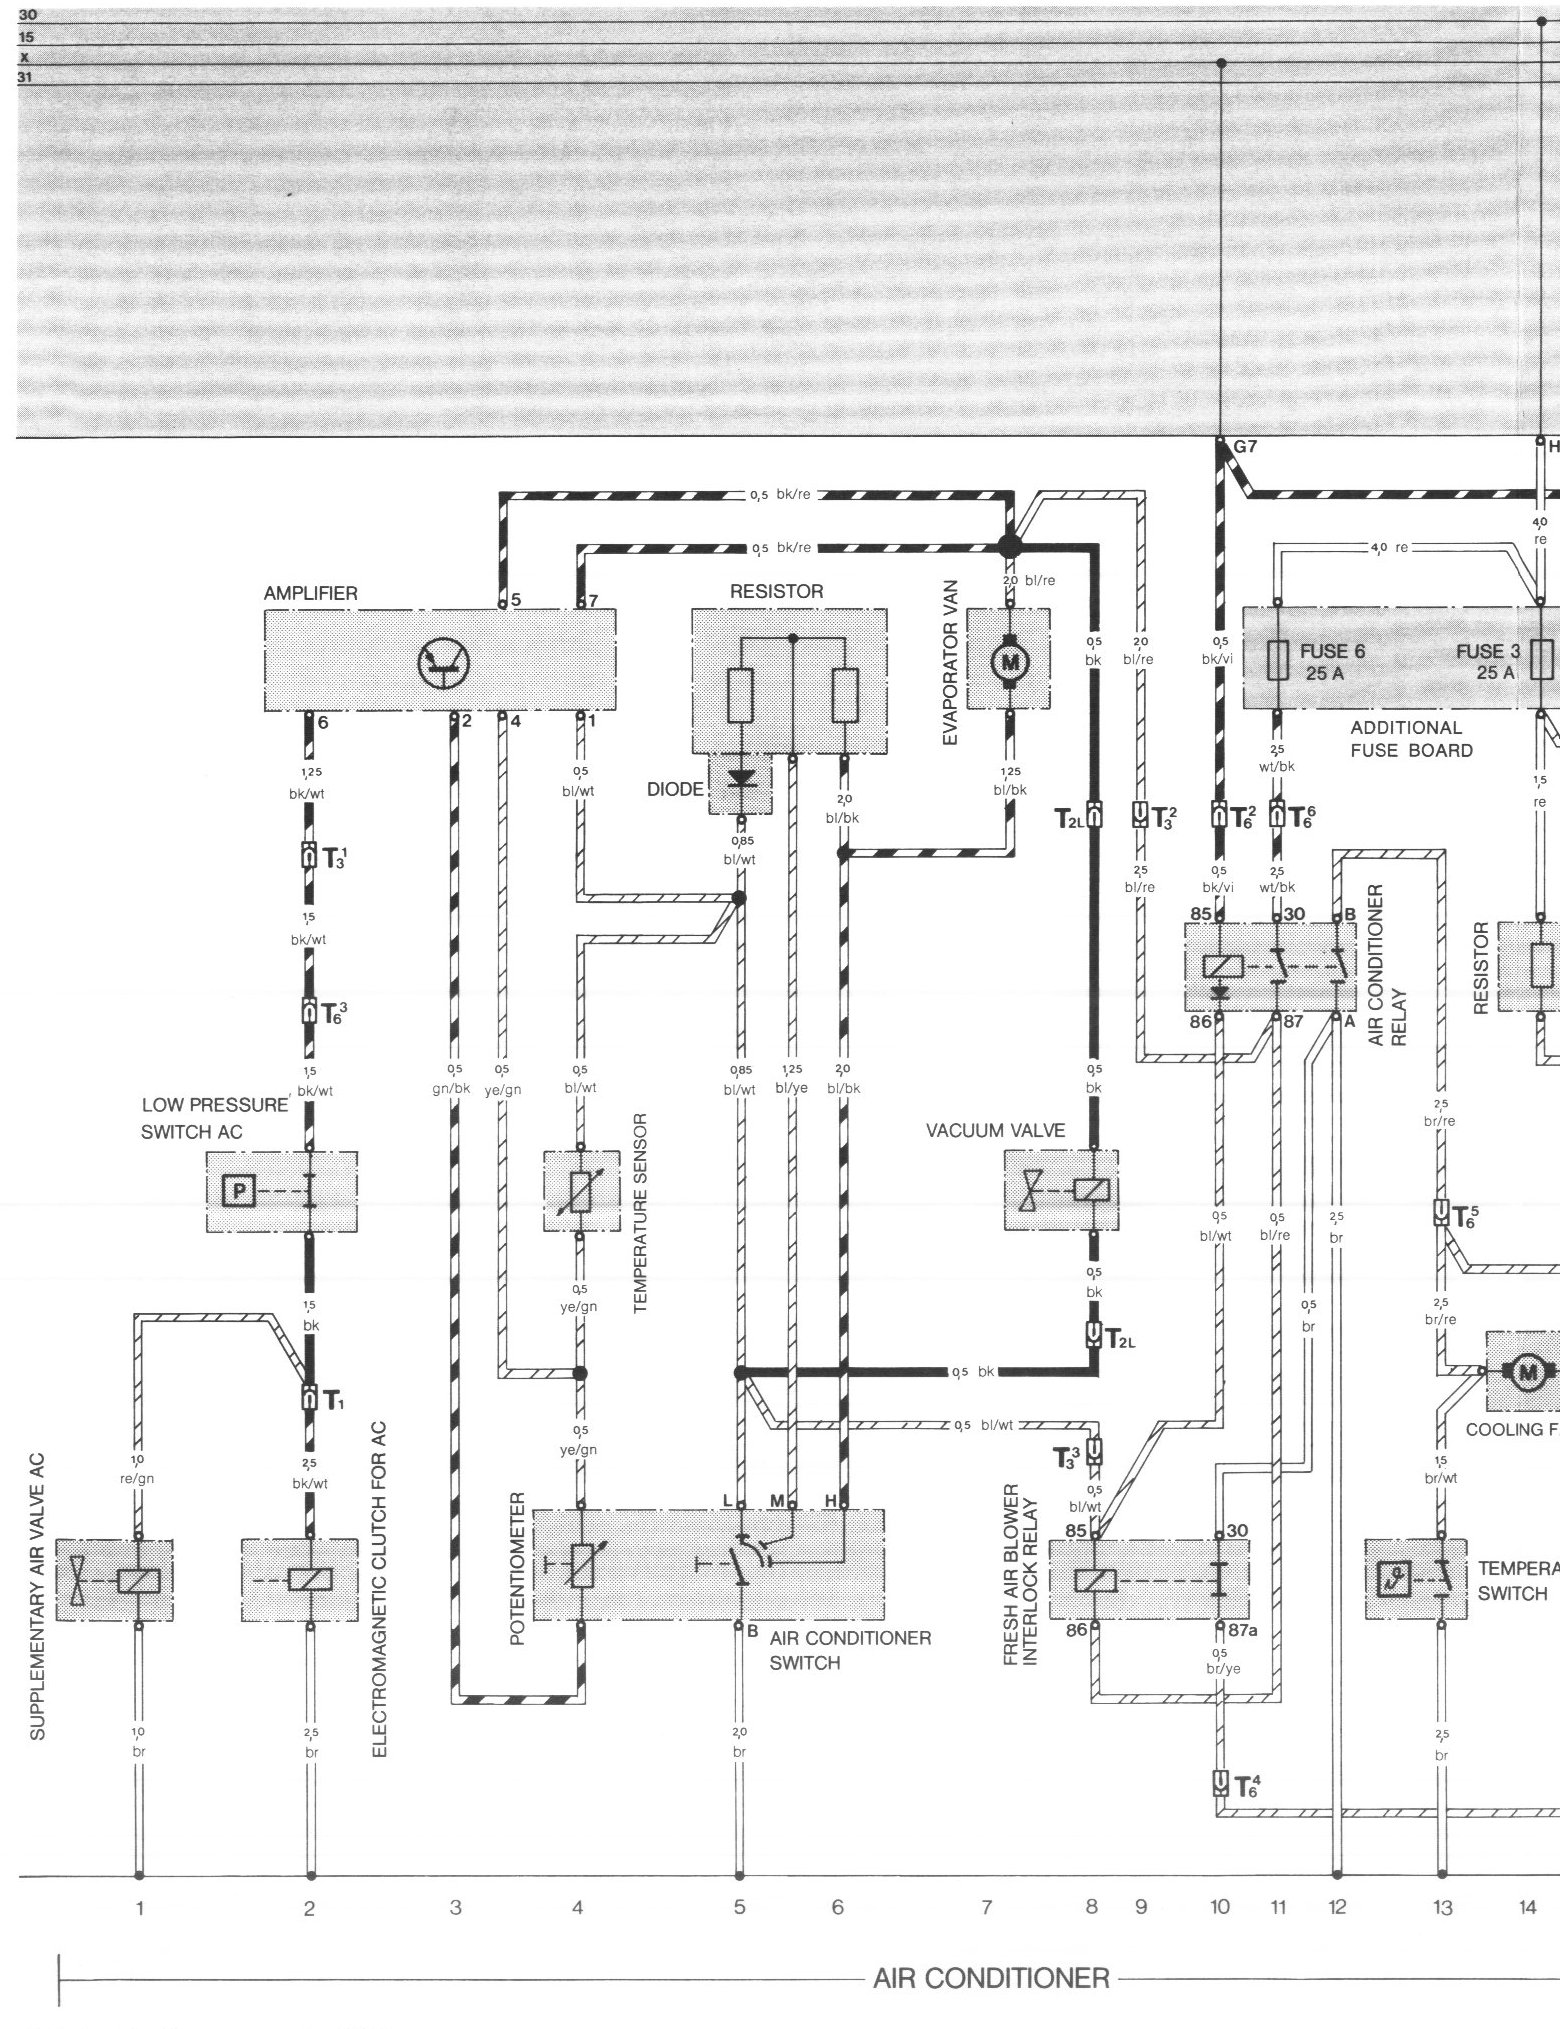 [DIAGRAM_1CA]  Wiring Window Diagram Switch 944 86 Porsche Diagram Base Website 86 Porsche  - VENNDIAGRAMWORKSHEET.TARNON-MIMENTE.FR | Wiring Window Diagram Switch 944 86 Porsche |  | Diagram Base Website Full Edition